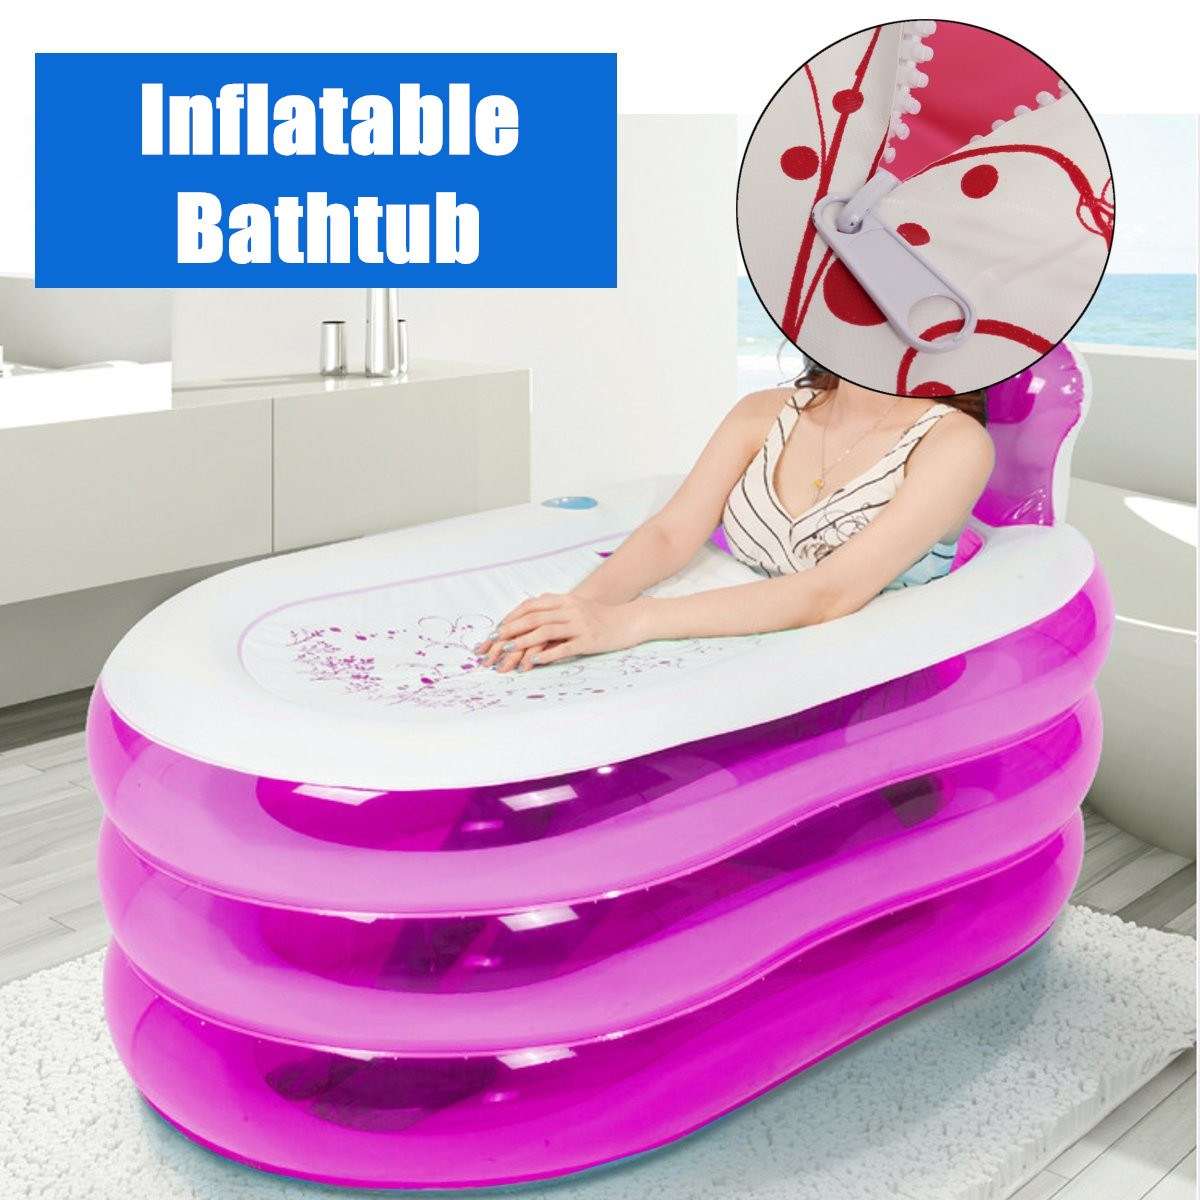 Brand New Inflatable Bathtub Adult PVC Folding Portable Steam Spa Sauna Bath tub bathtub Home hot tub ...